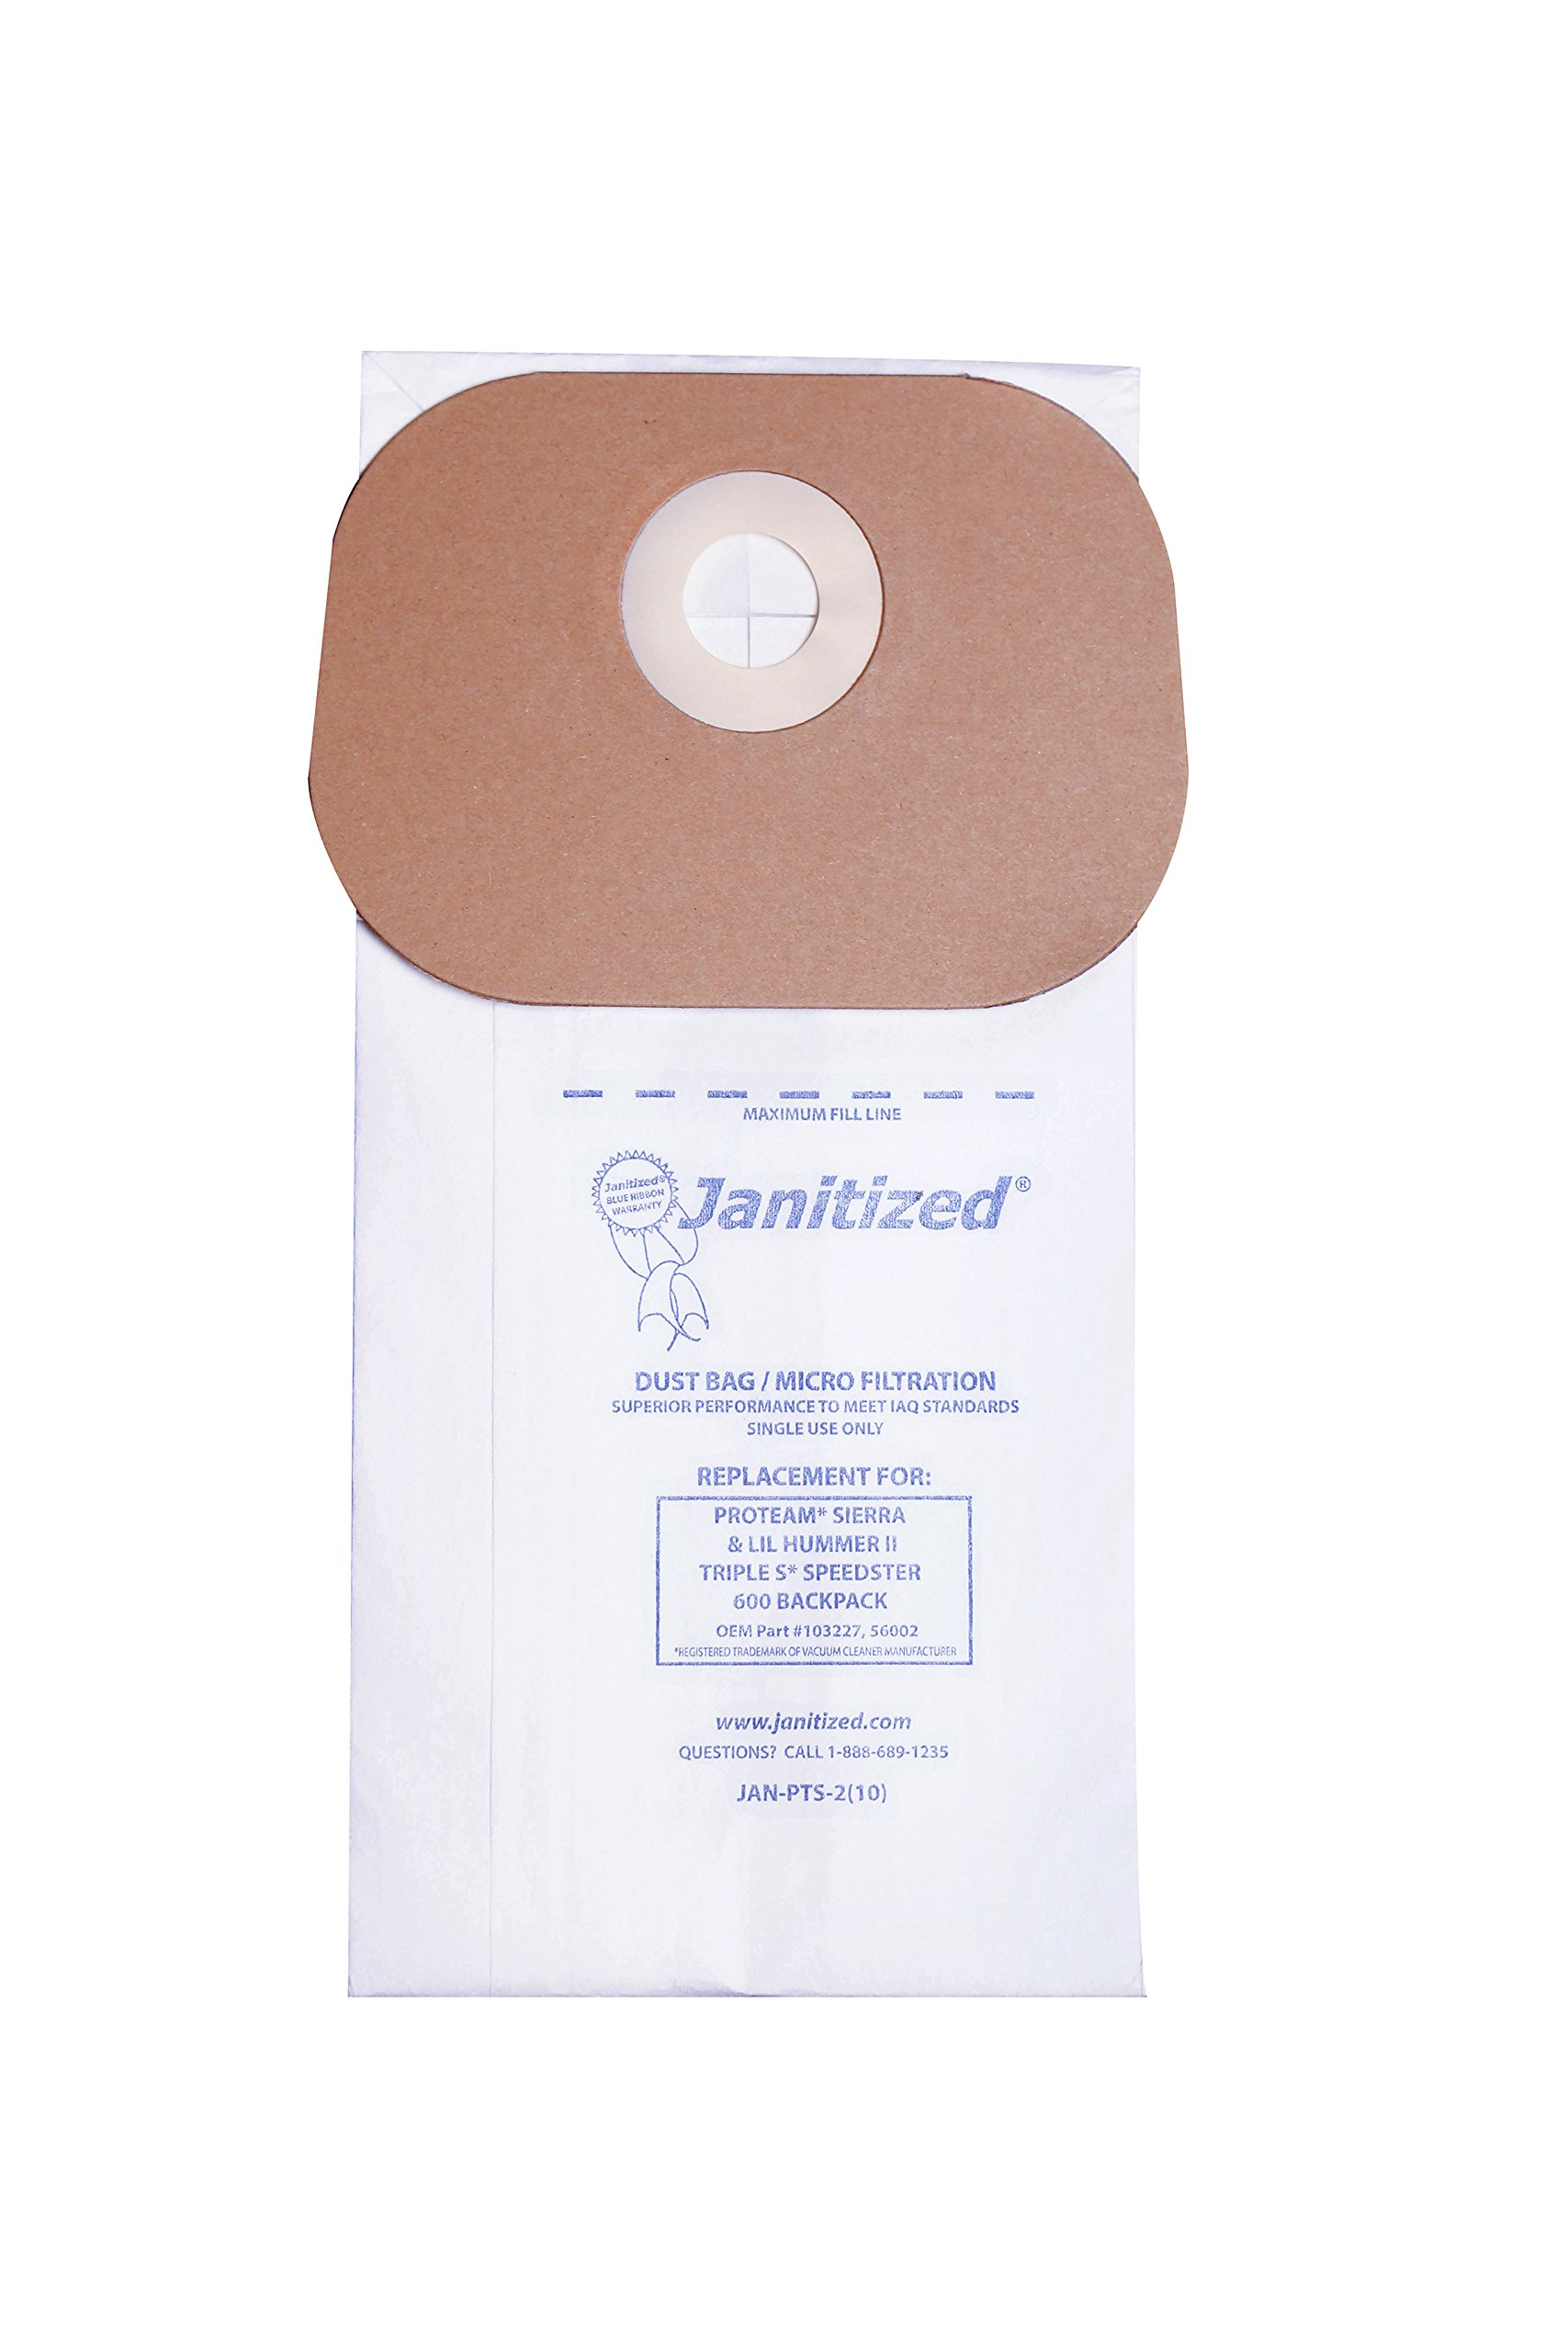 Janitized JAN-PTS-2(10) Paper Premium Replacement Commercial Vacuum Bag For ProTeam Sierra & Lil Hummer II, Triple S Speedster 600 Vacuum Cleaners (10 - 10 packs)